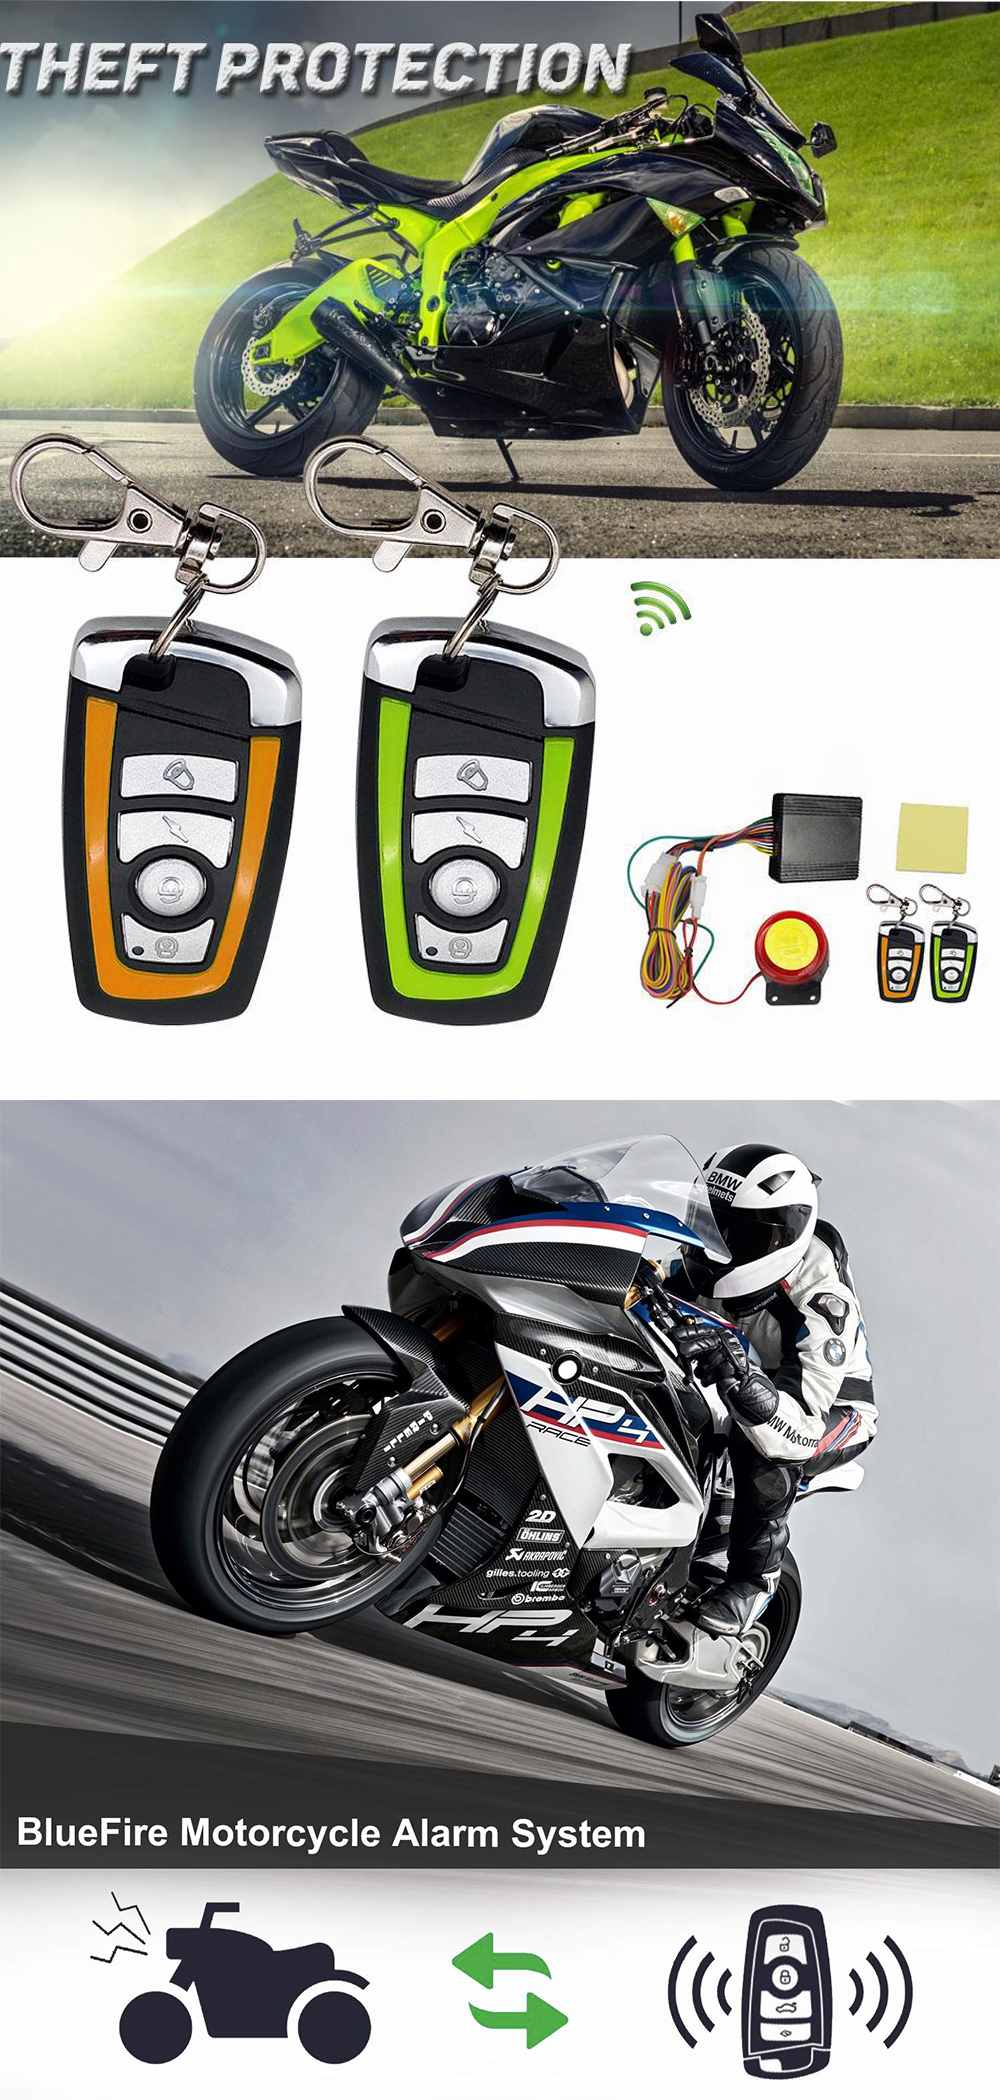 Car Anti-theft Security Alarm,ABS 12V 125DB Anti-trimming and Waterproof Burglar System with Double Color Remote Control and Shock Sensor for Motorbike Bike Tricycle etc